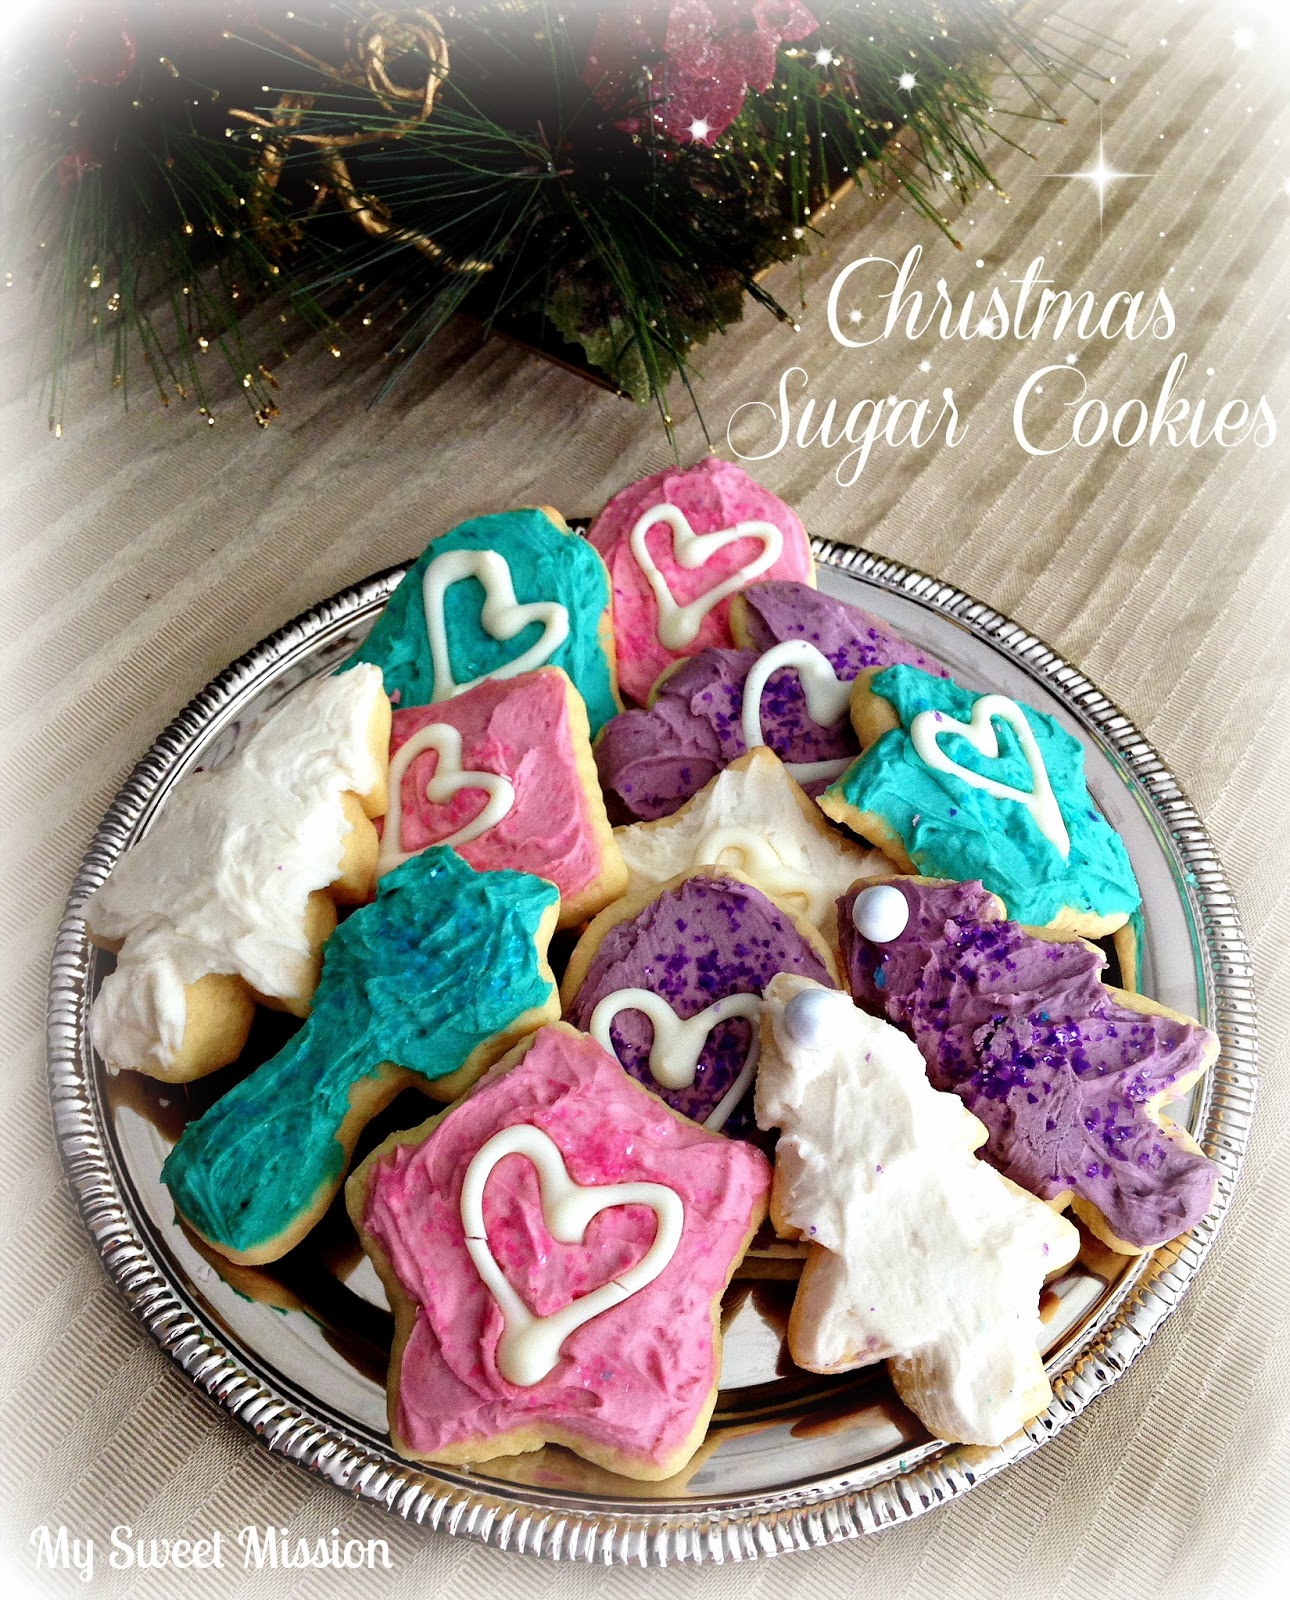 Pretty Christmas Sugar Cookies by My Sweet Mission